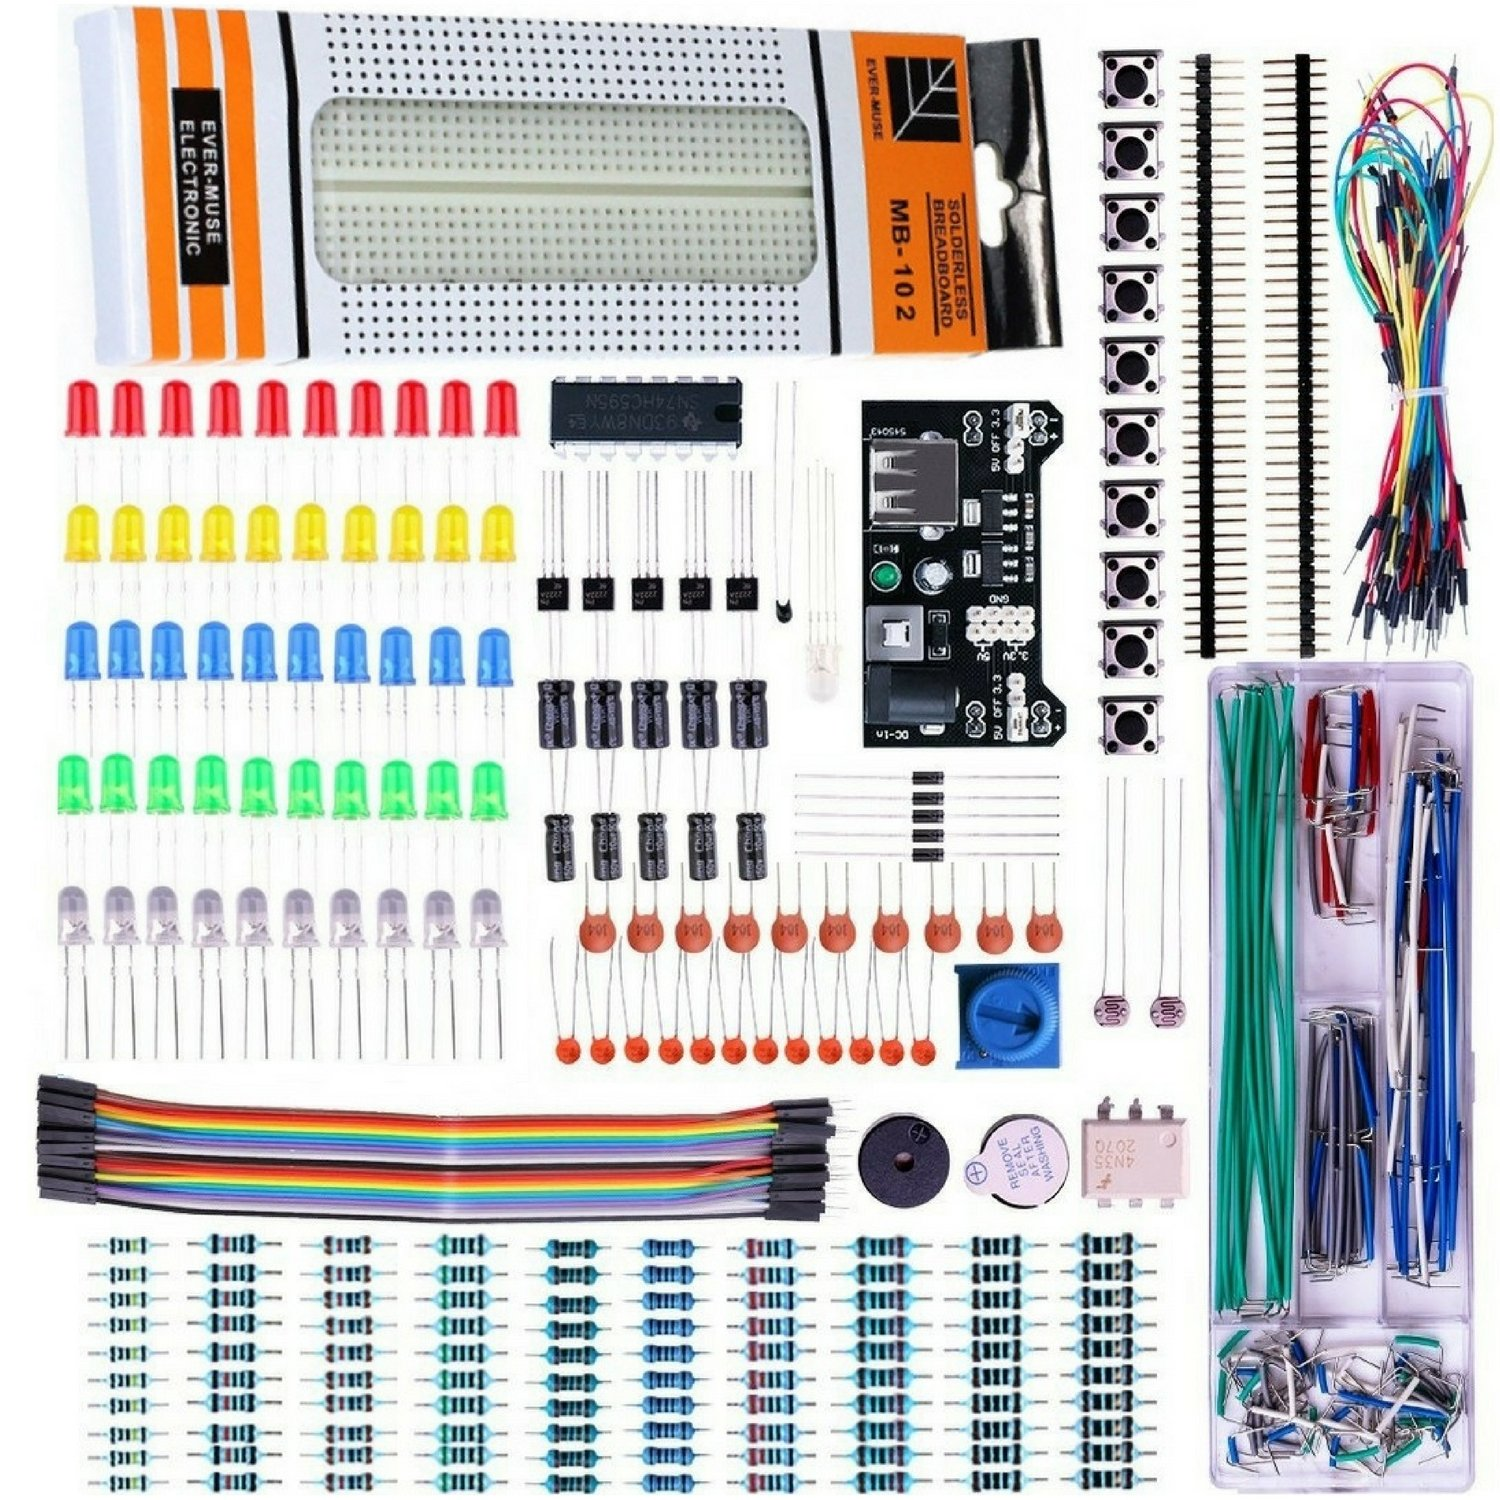 Quad Storetm Basic Electronics Kit For Arduino Uno R3 Raspberry Hobby Circuits Cricket Voice With Buzzer Using Lm324 Pi Breadboard Capacitor Resistor Led Switch Etc Industrial